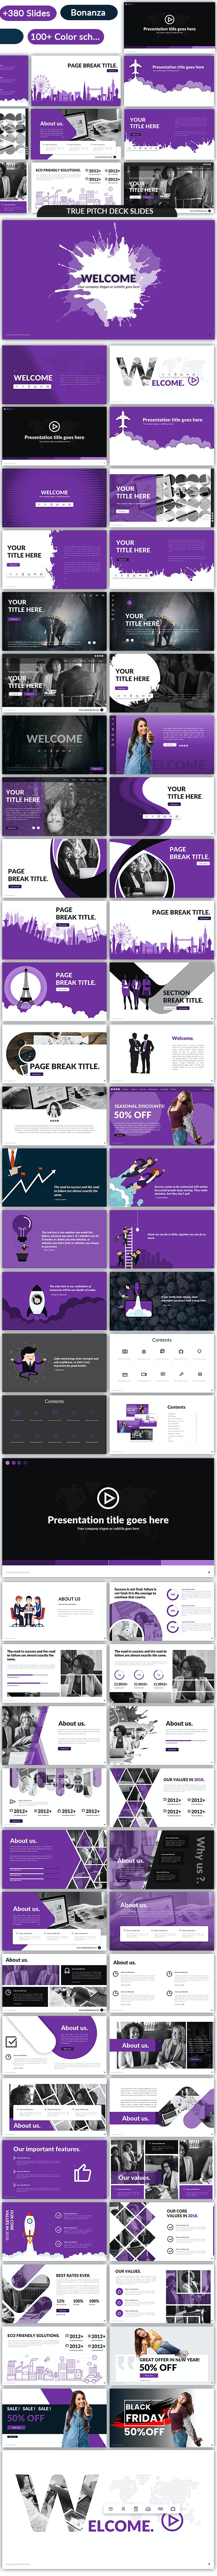 Dreamz - Pitch Deck Tool Kit - Business PowerPoint Templates